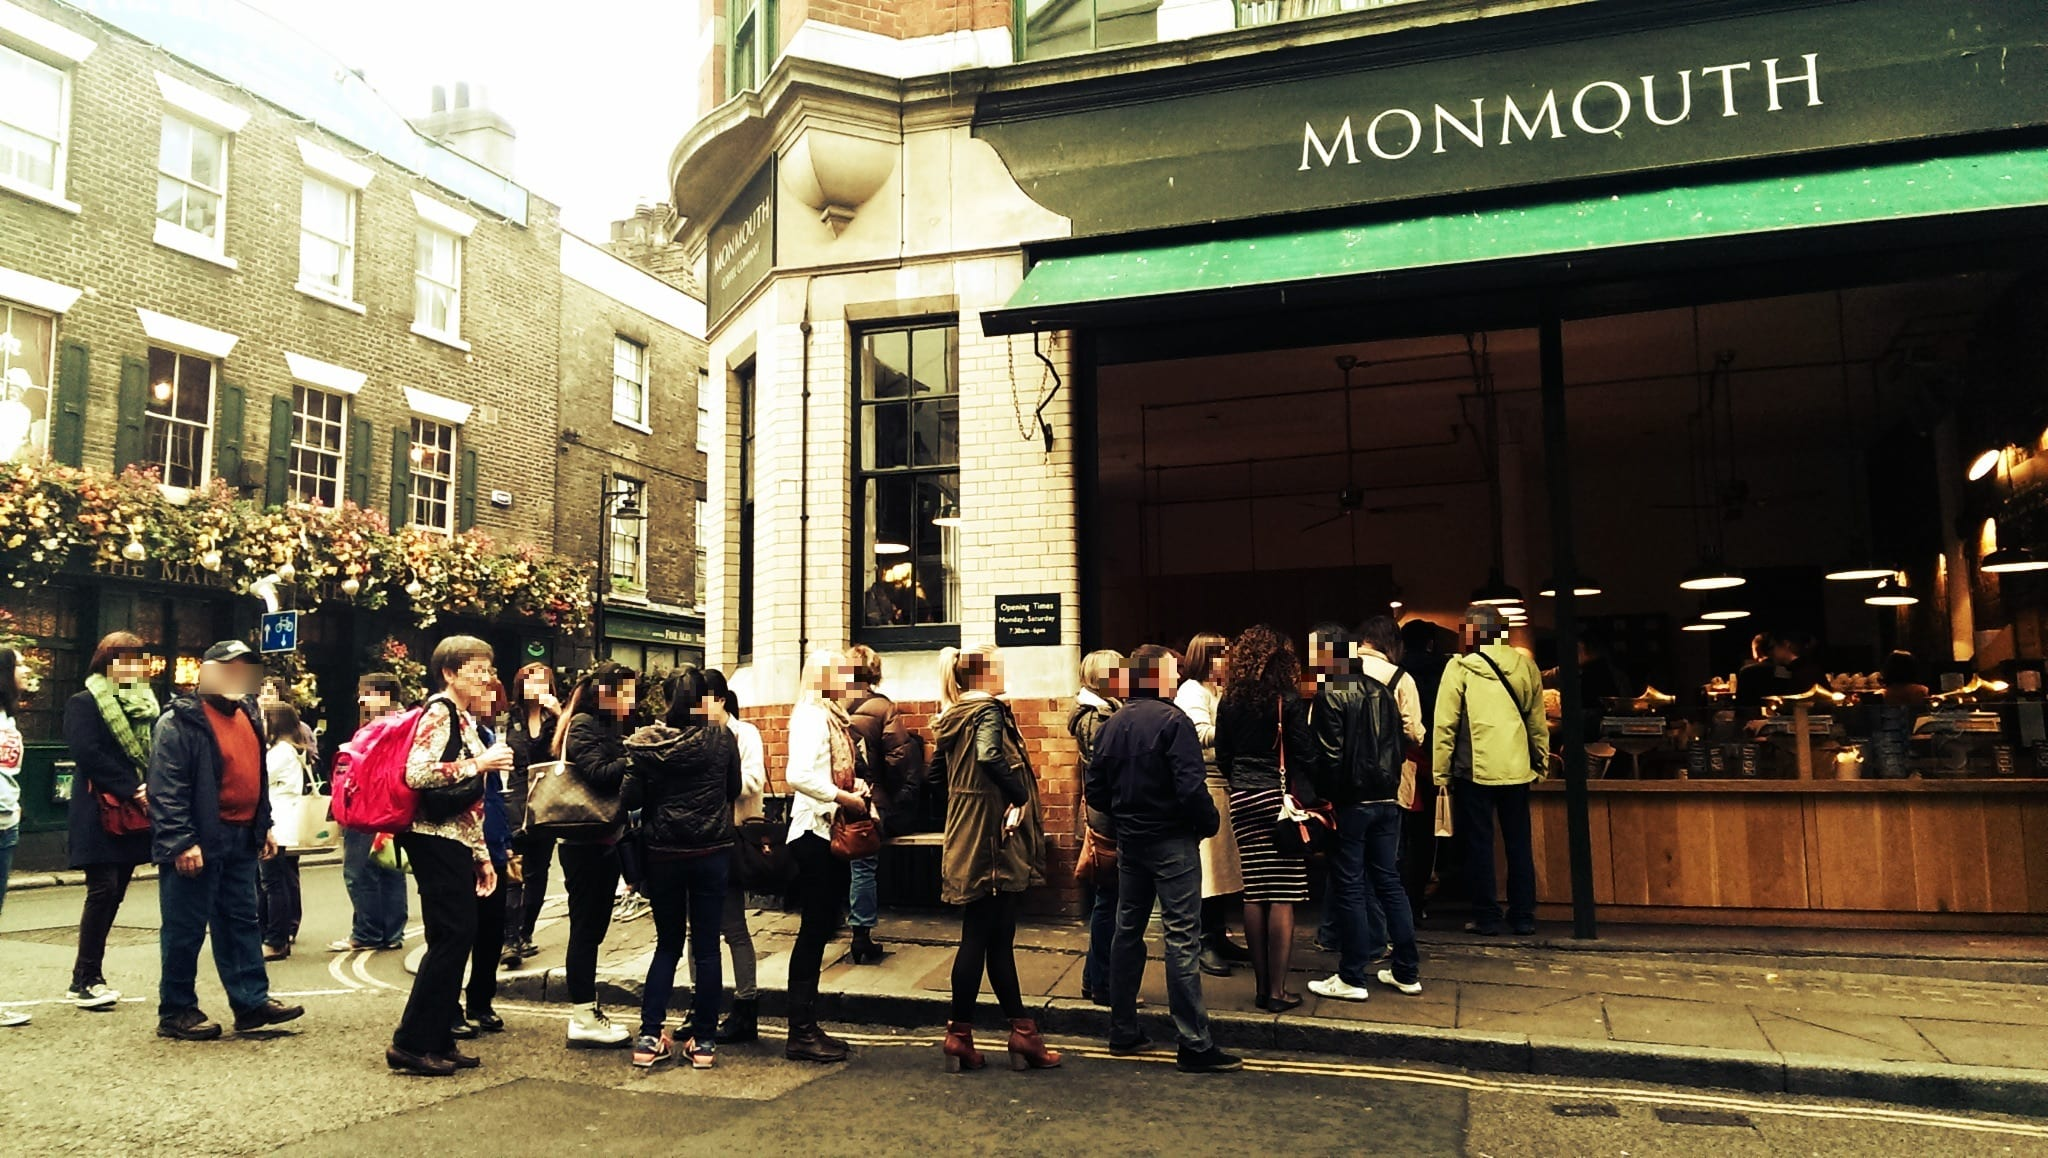 Borough Market Monmouth